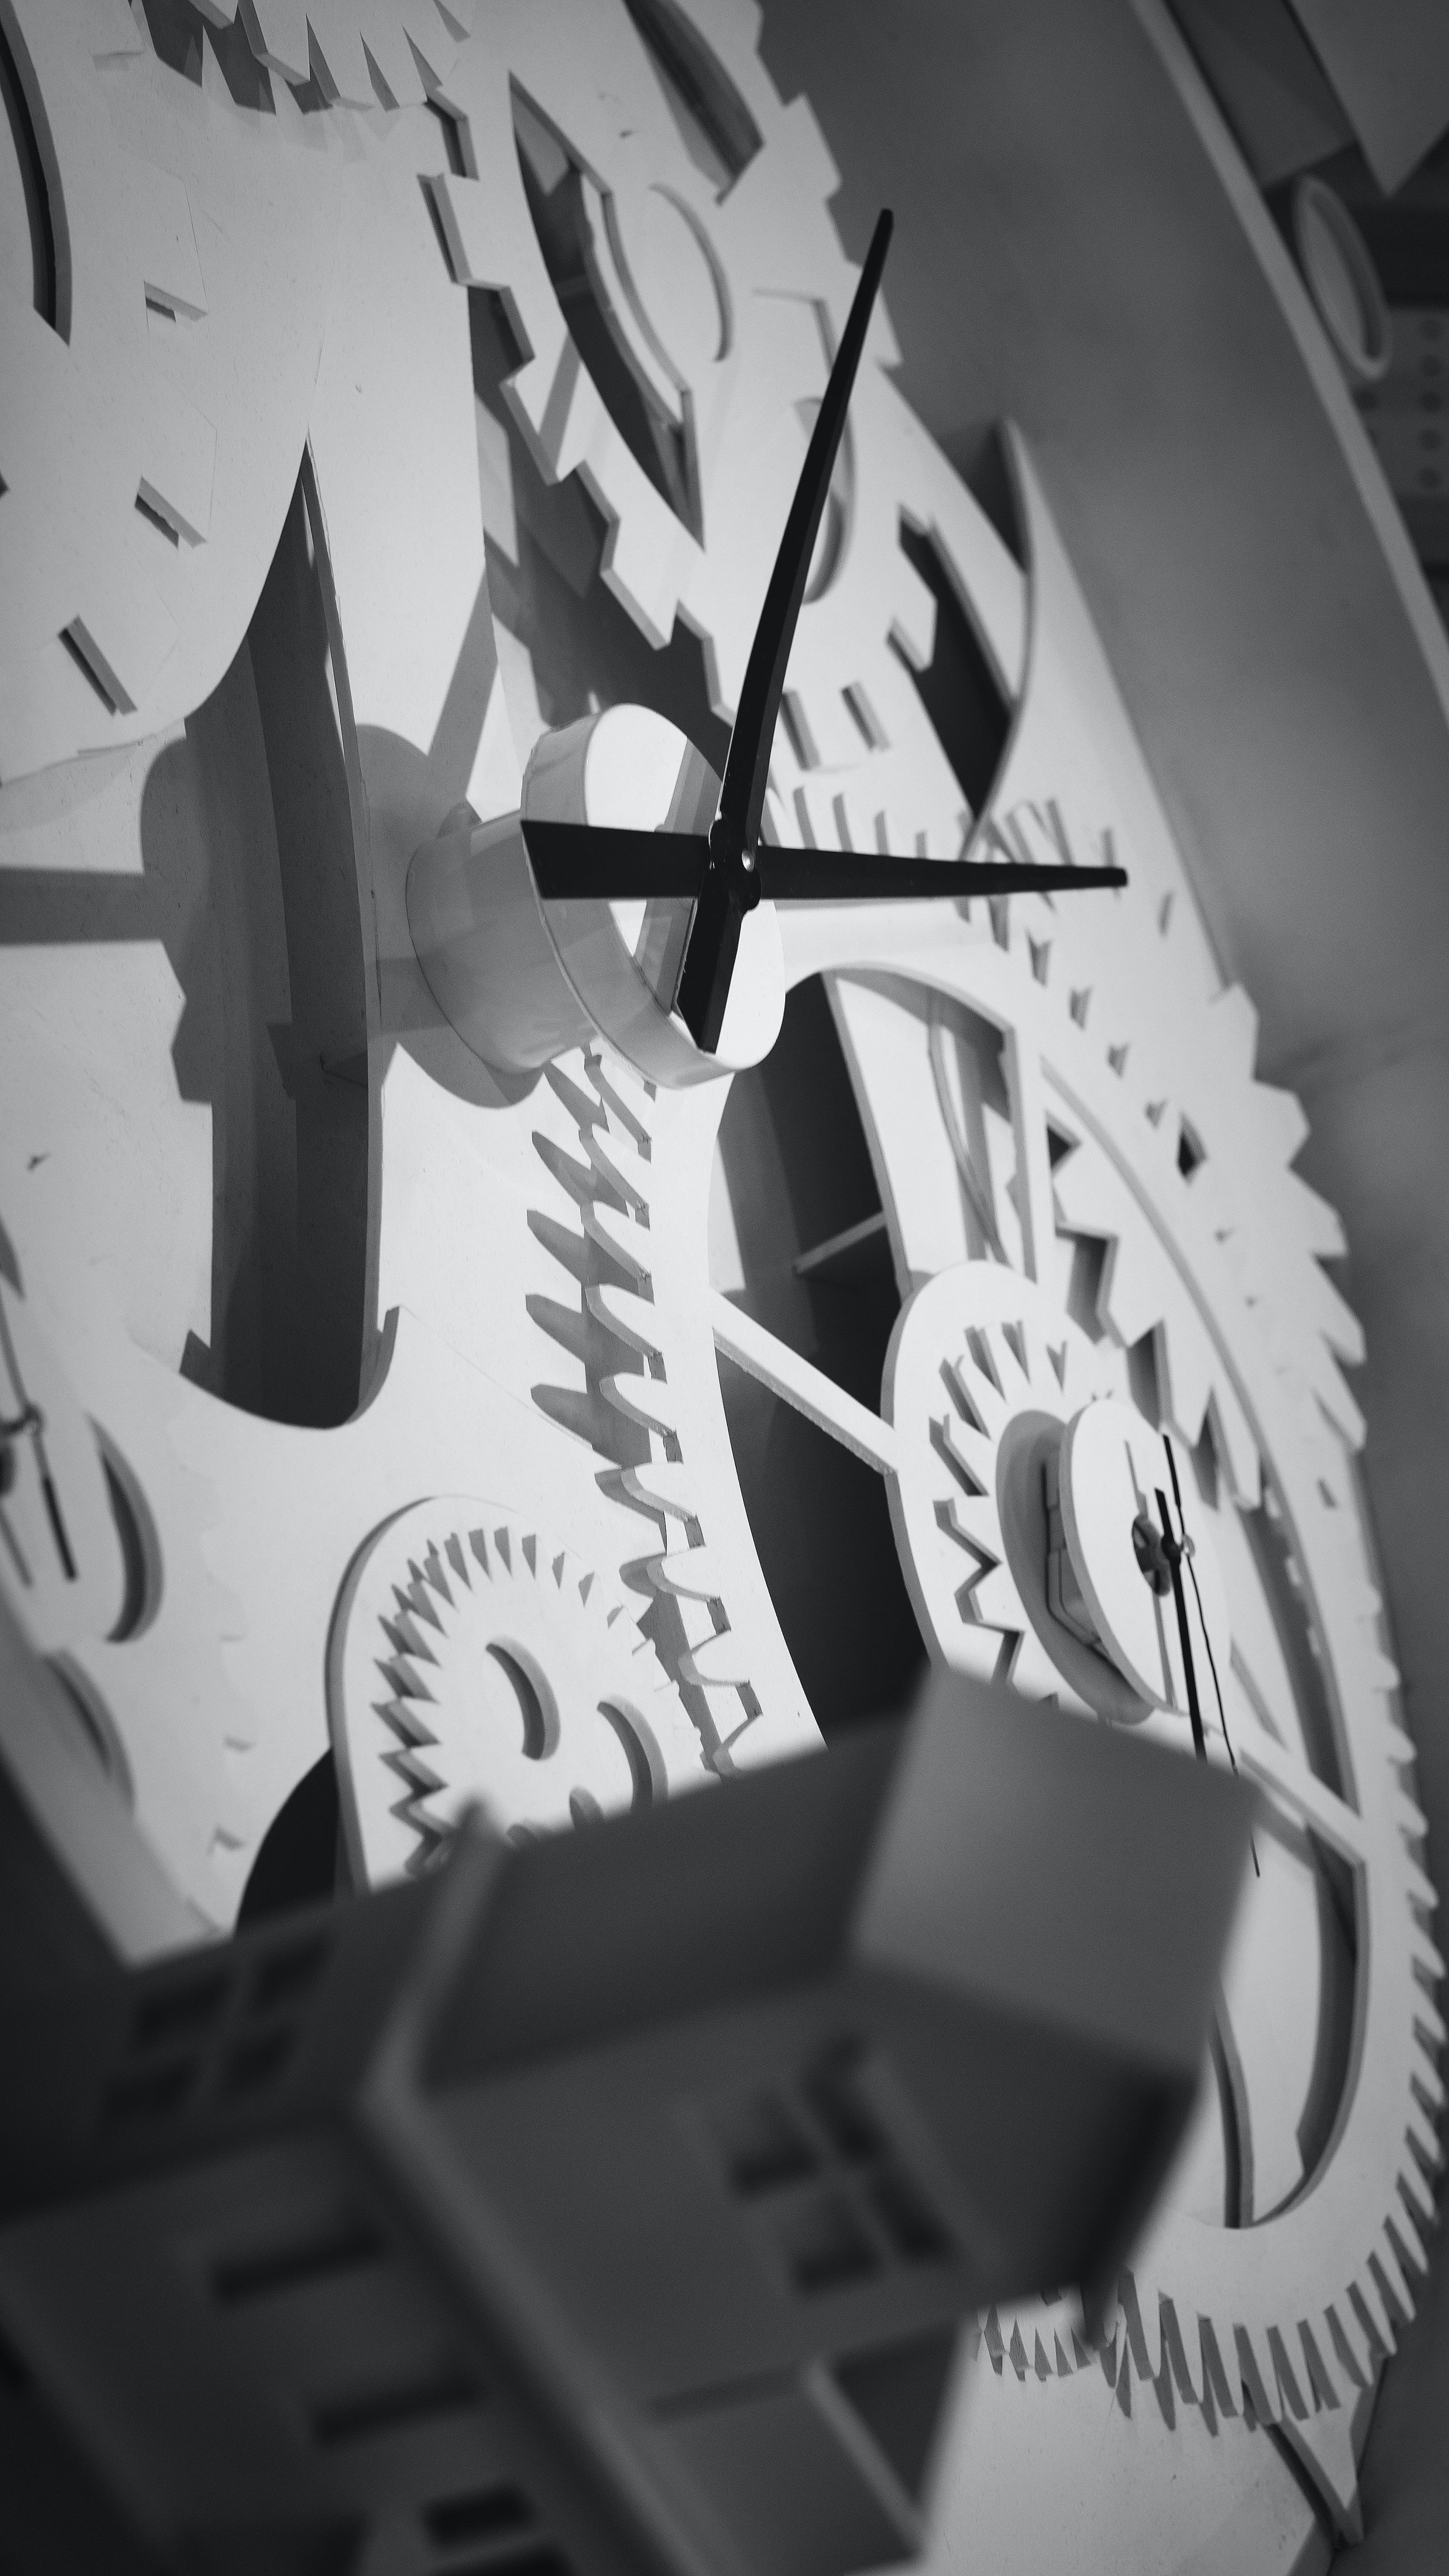 Free stock photo of time, clock